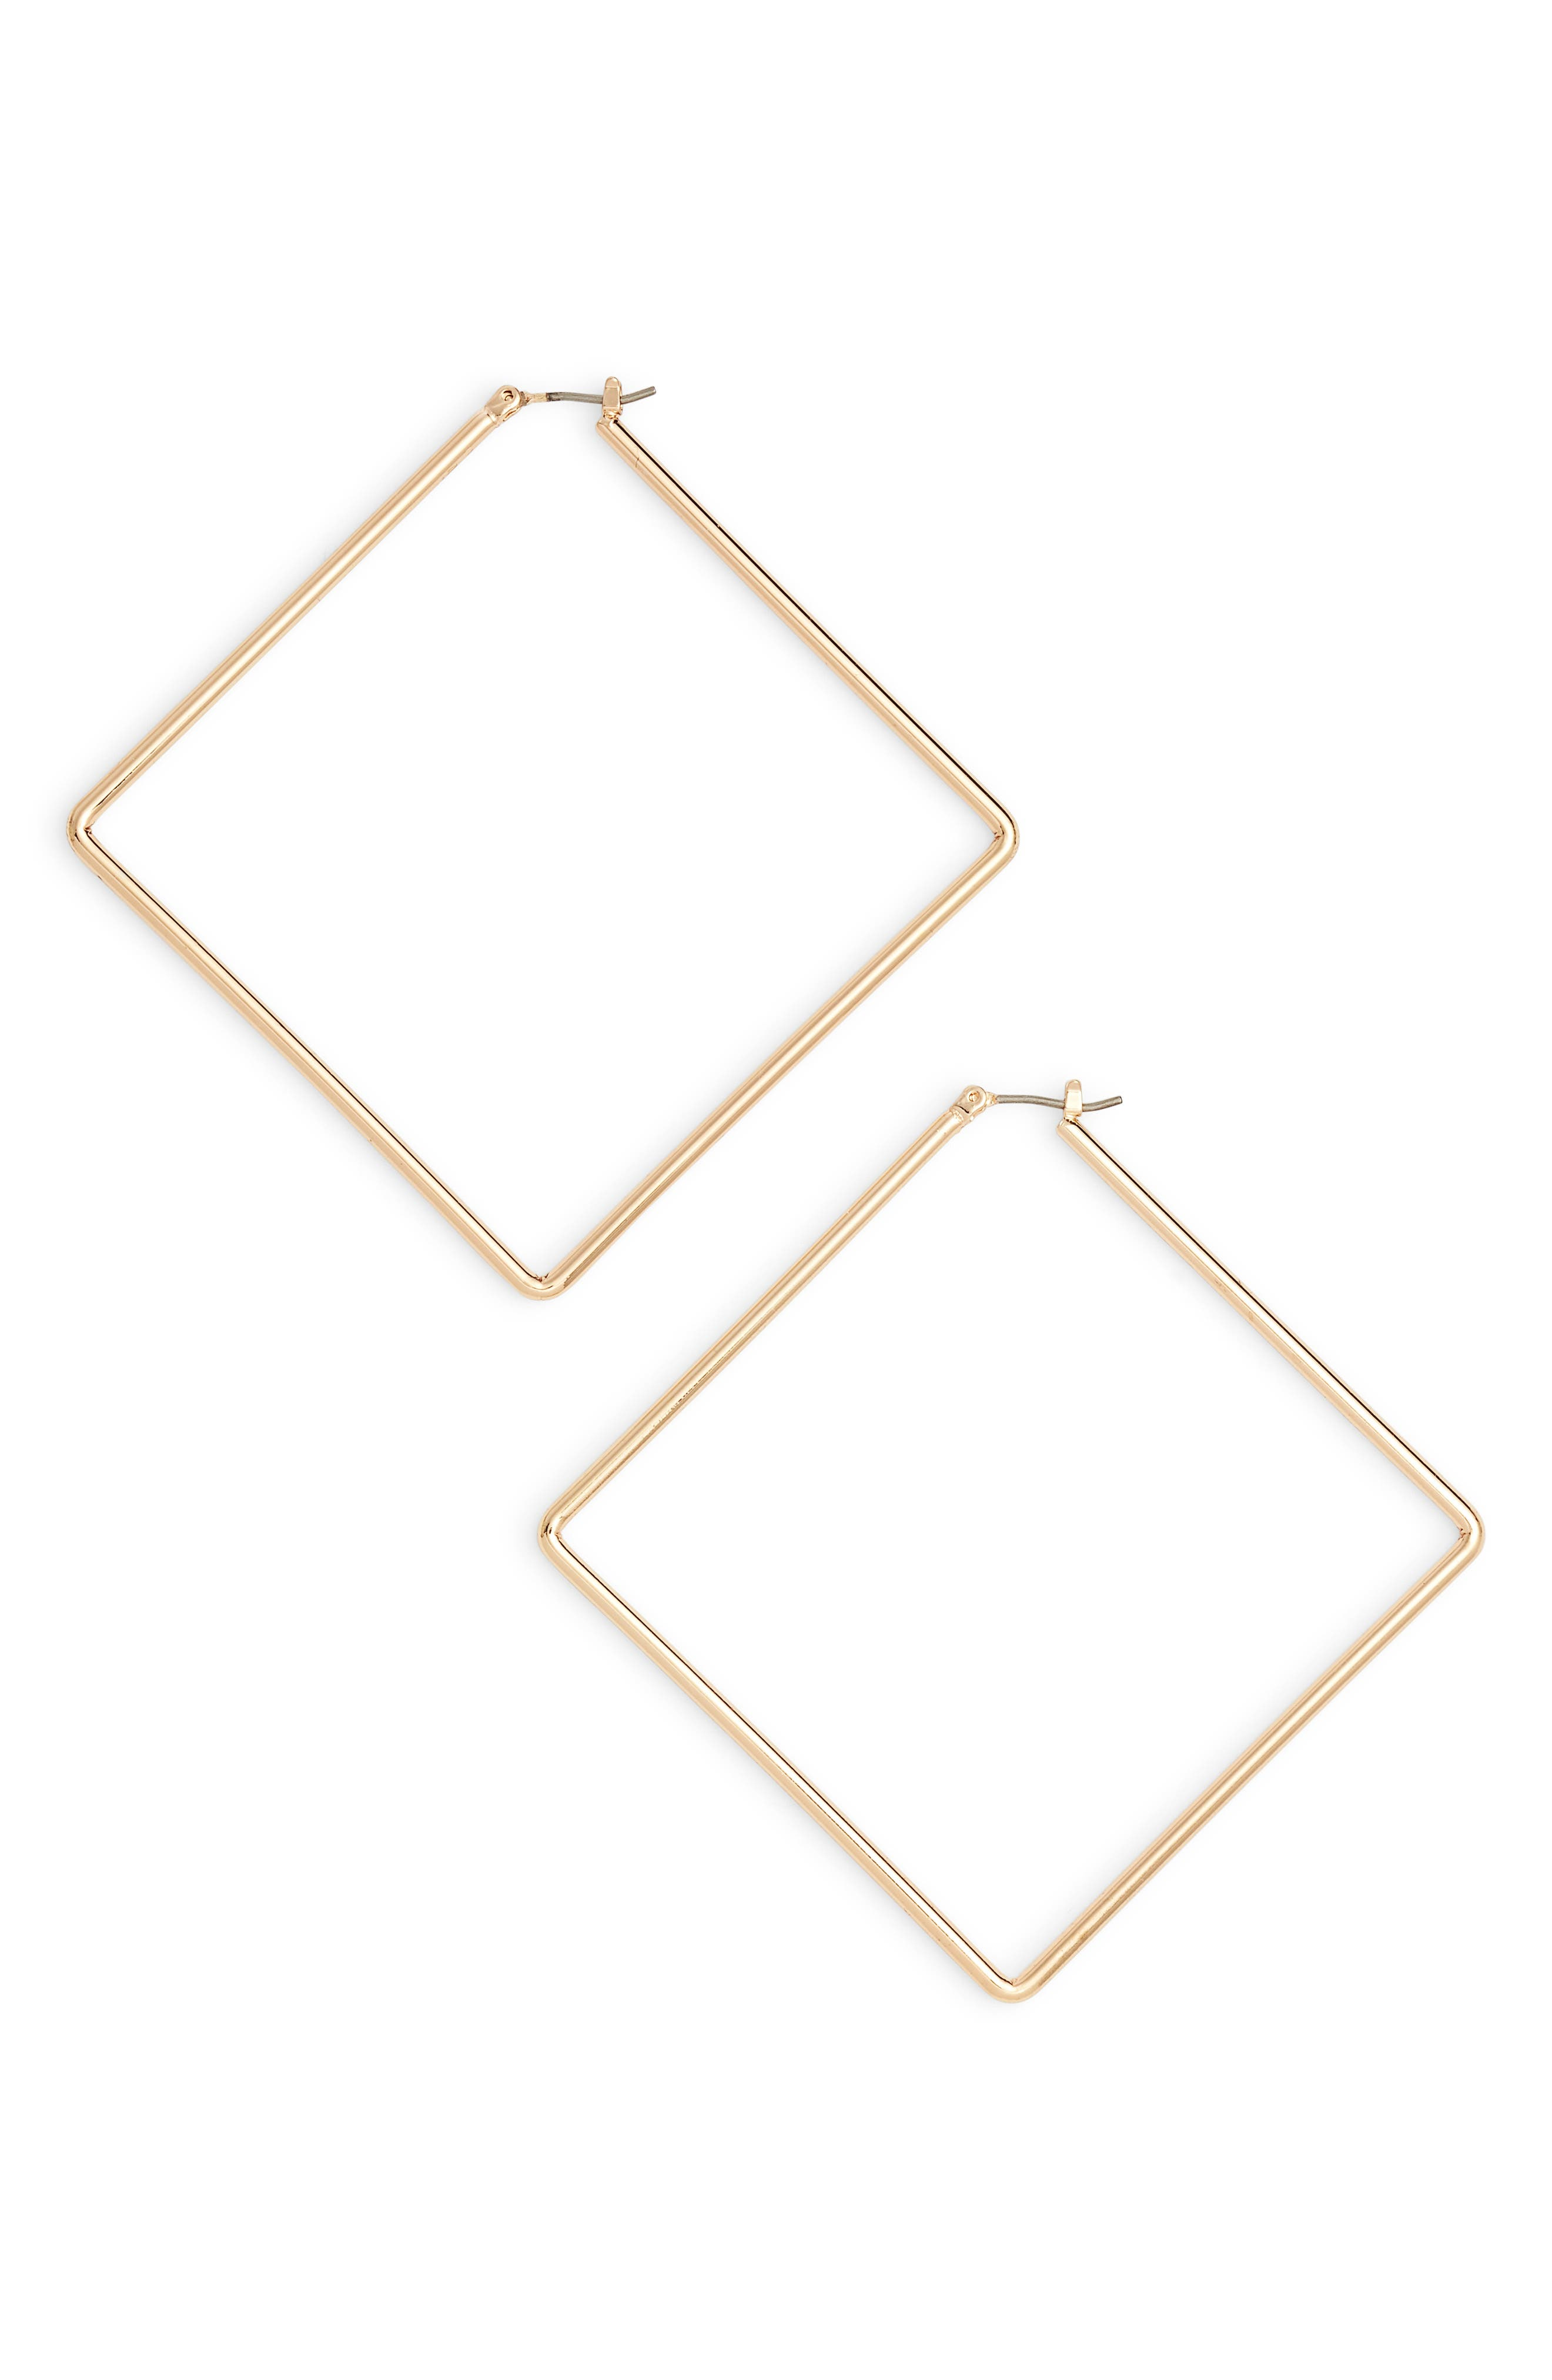 UNCOMMON JAMES BY KRISTIN CAVALLARI, Girl Boss Square Hoop Earrings, Main thumbnail 1, color, GOLD